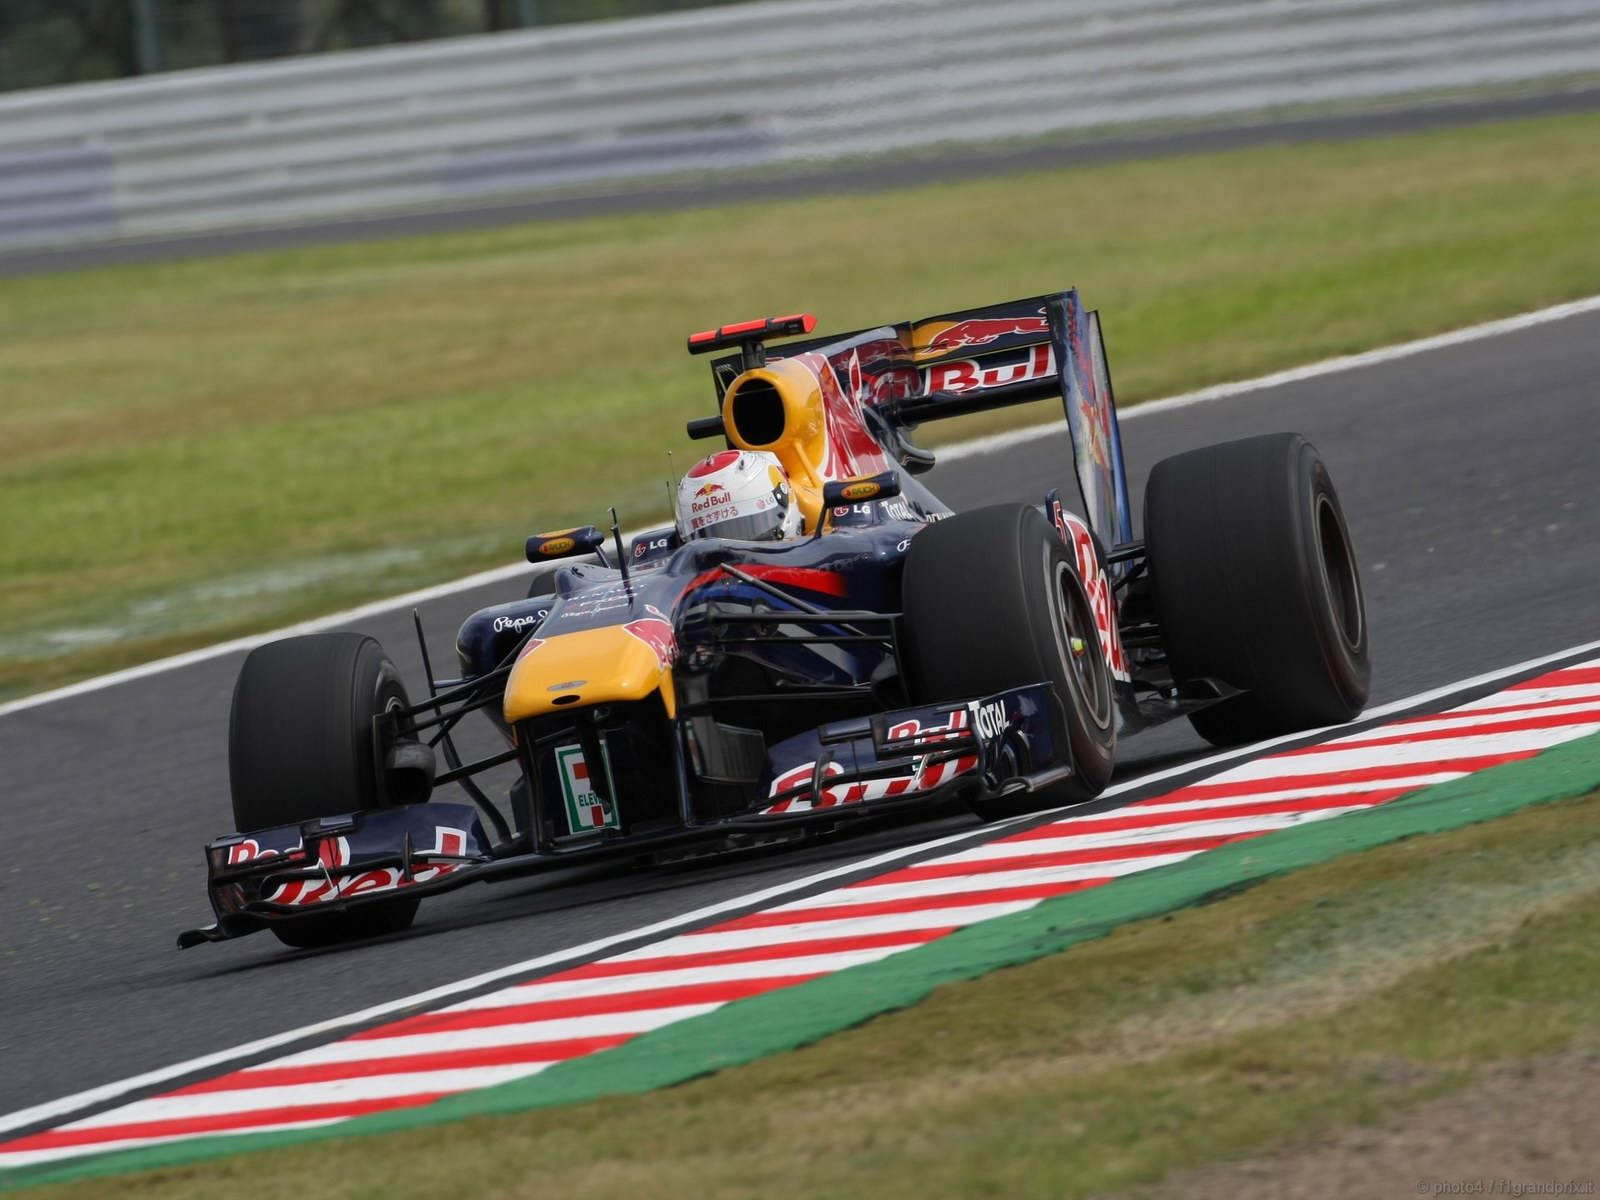 pojazdy - formula1 - gp_giappone_wallpapers_000043